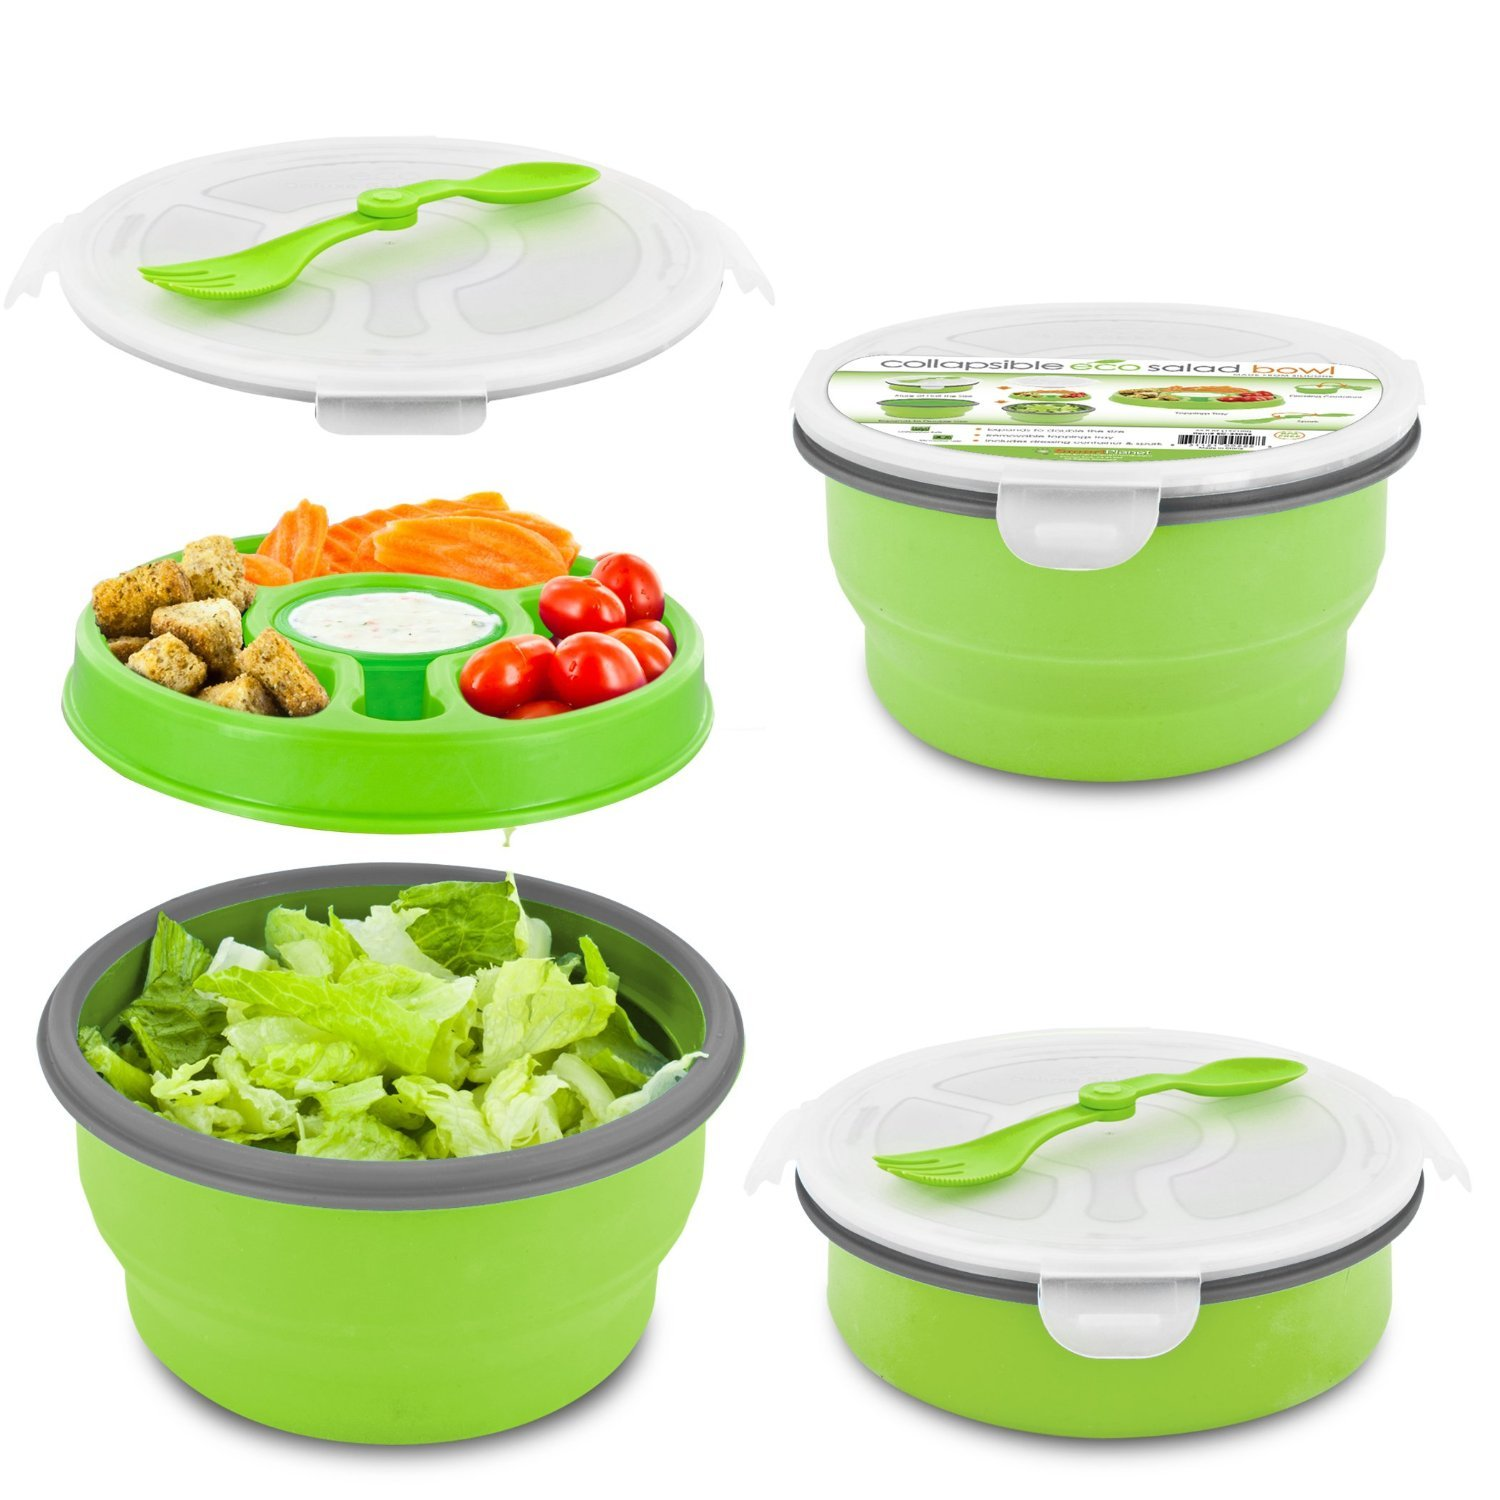 Smart Planet Eco Collapsible Salad Bowl